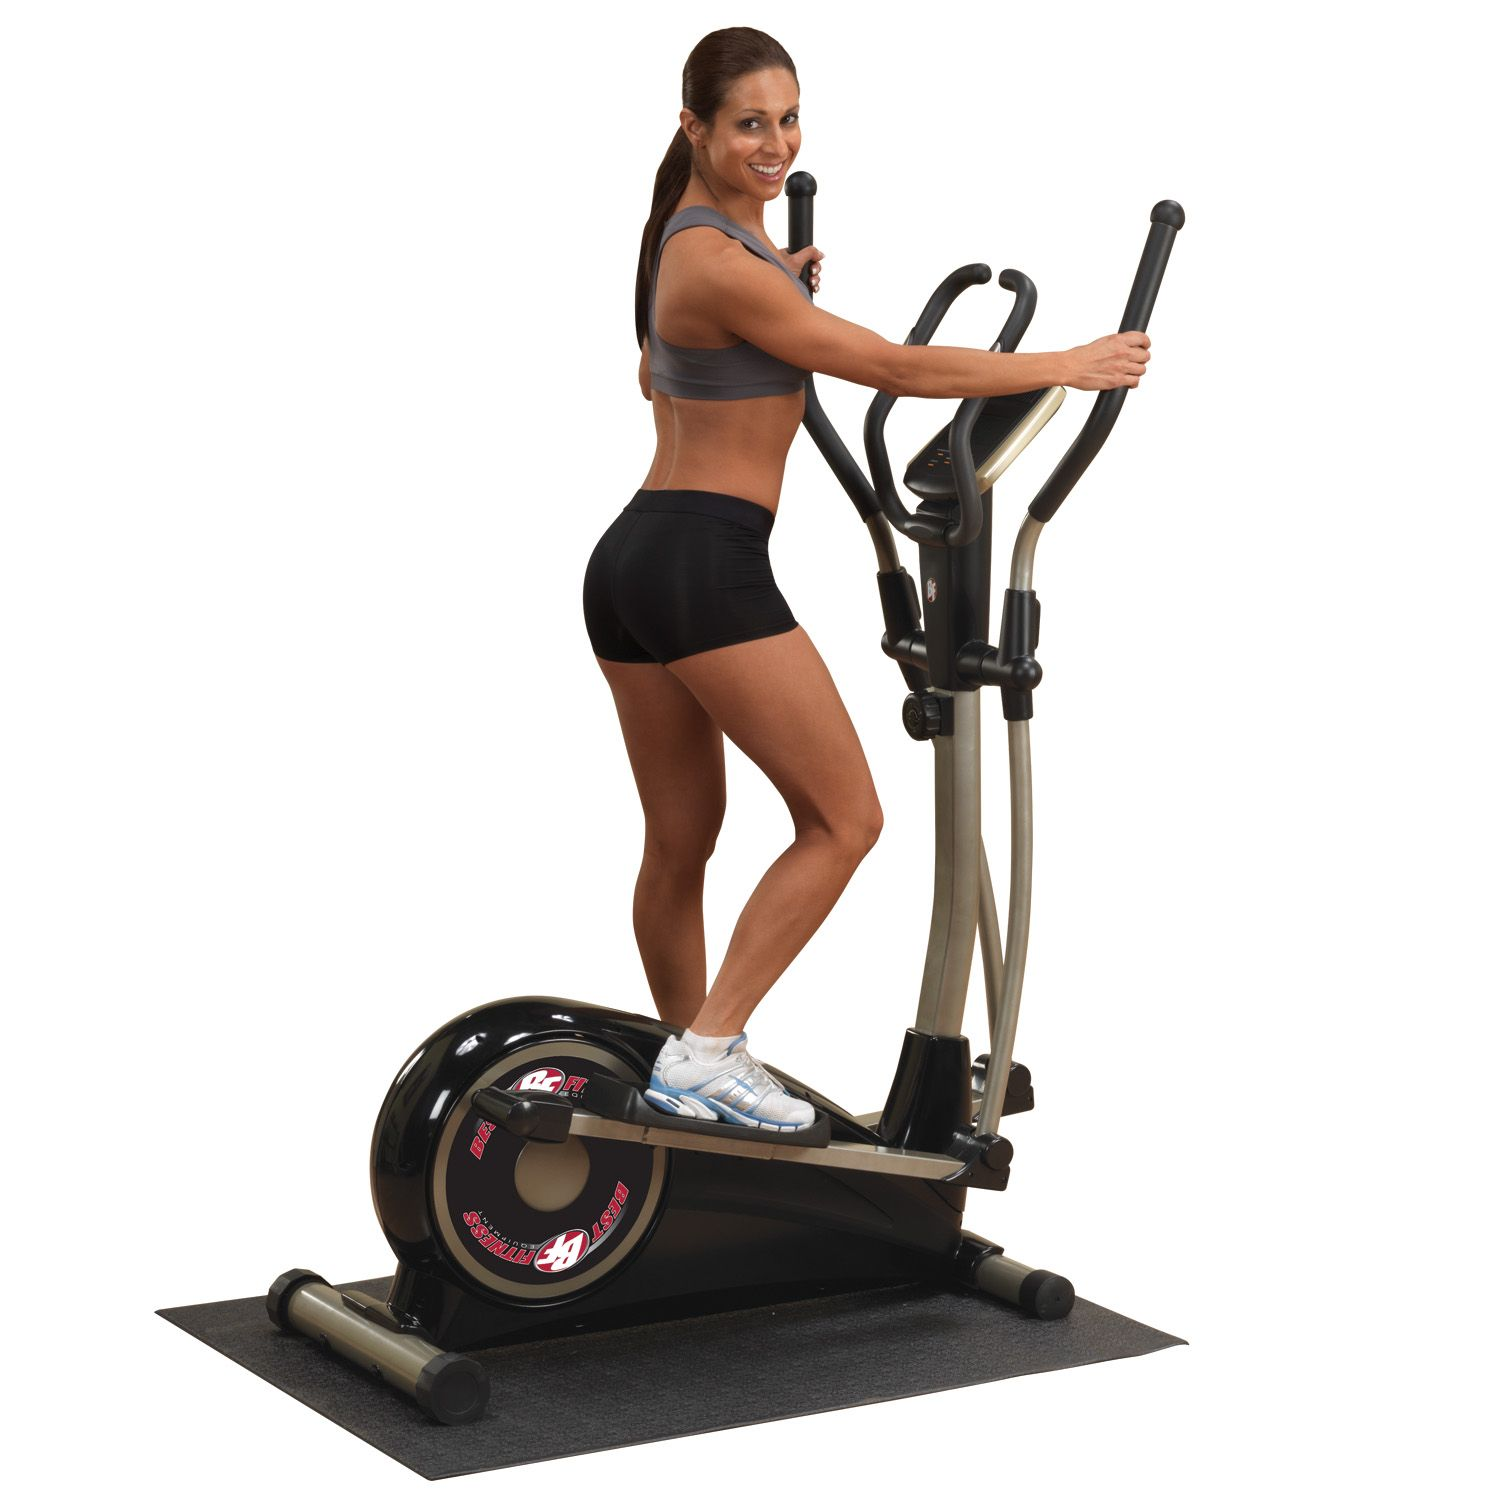 Treadmill Vs. Elliptical: Which Is Best For You?